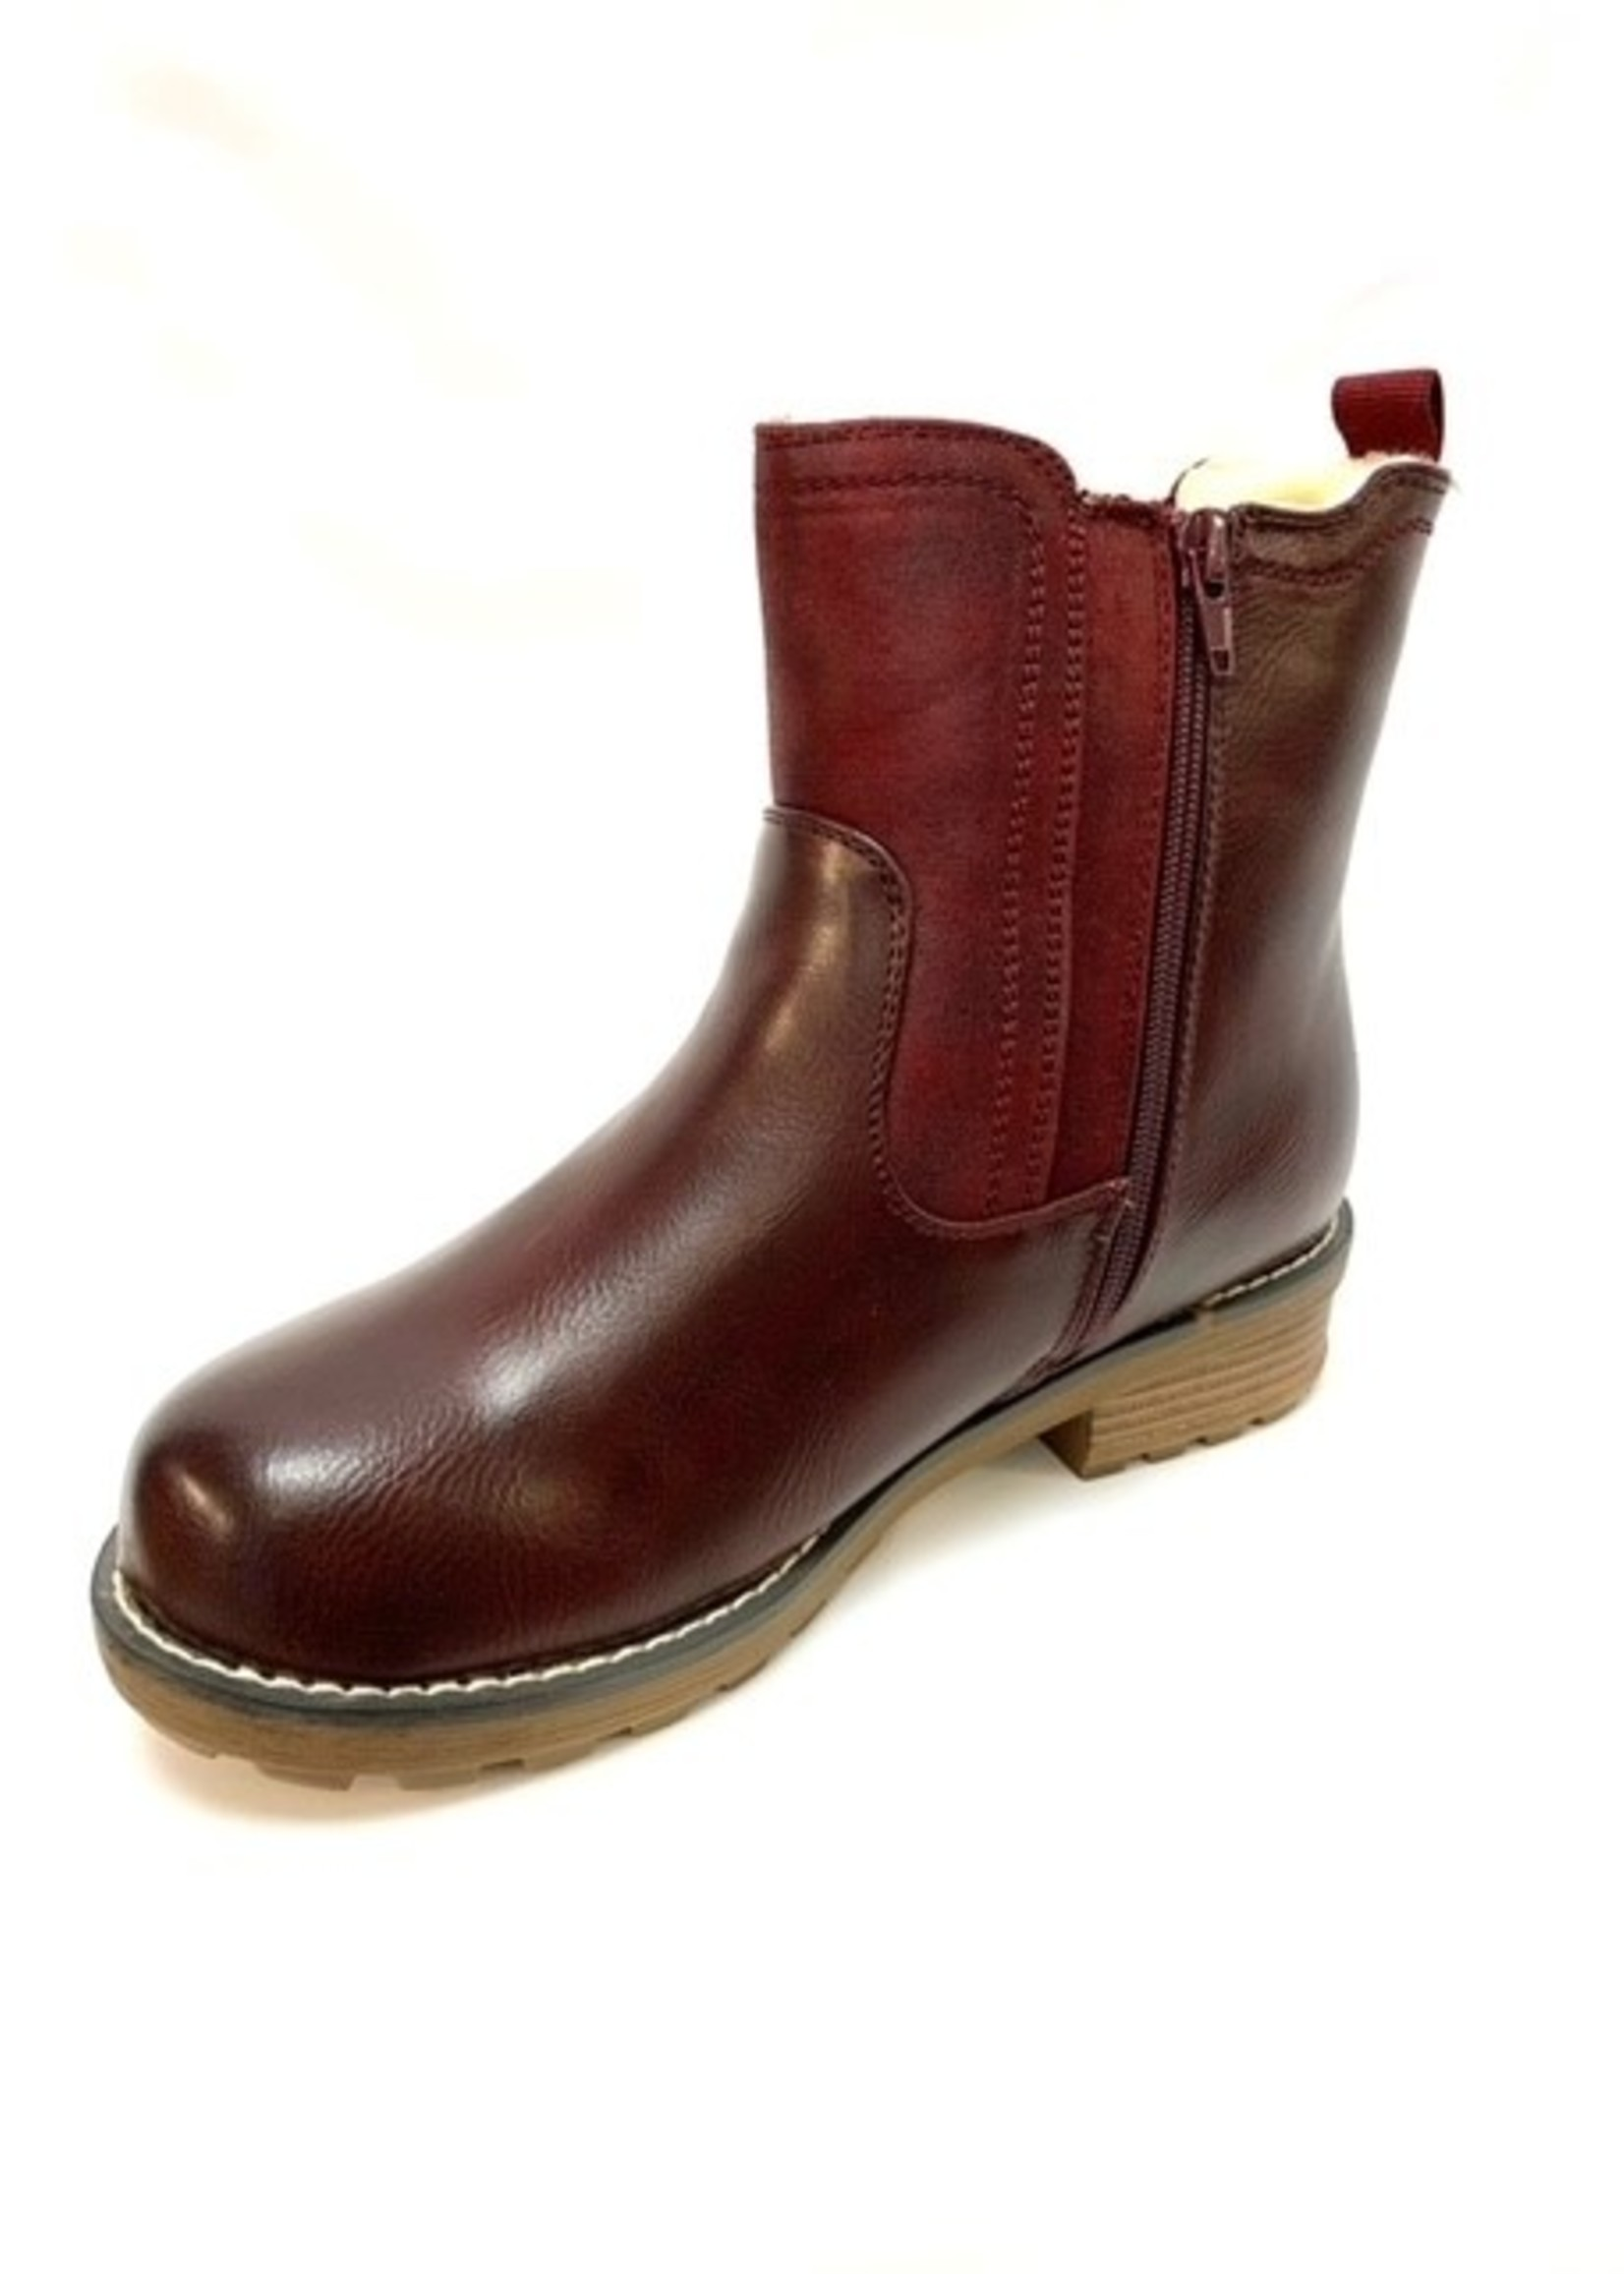 Frontier North short winter boot, three colors available